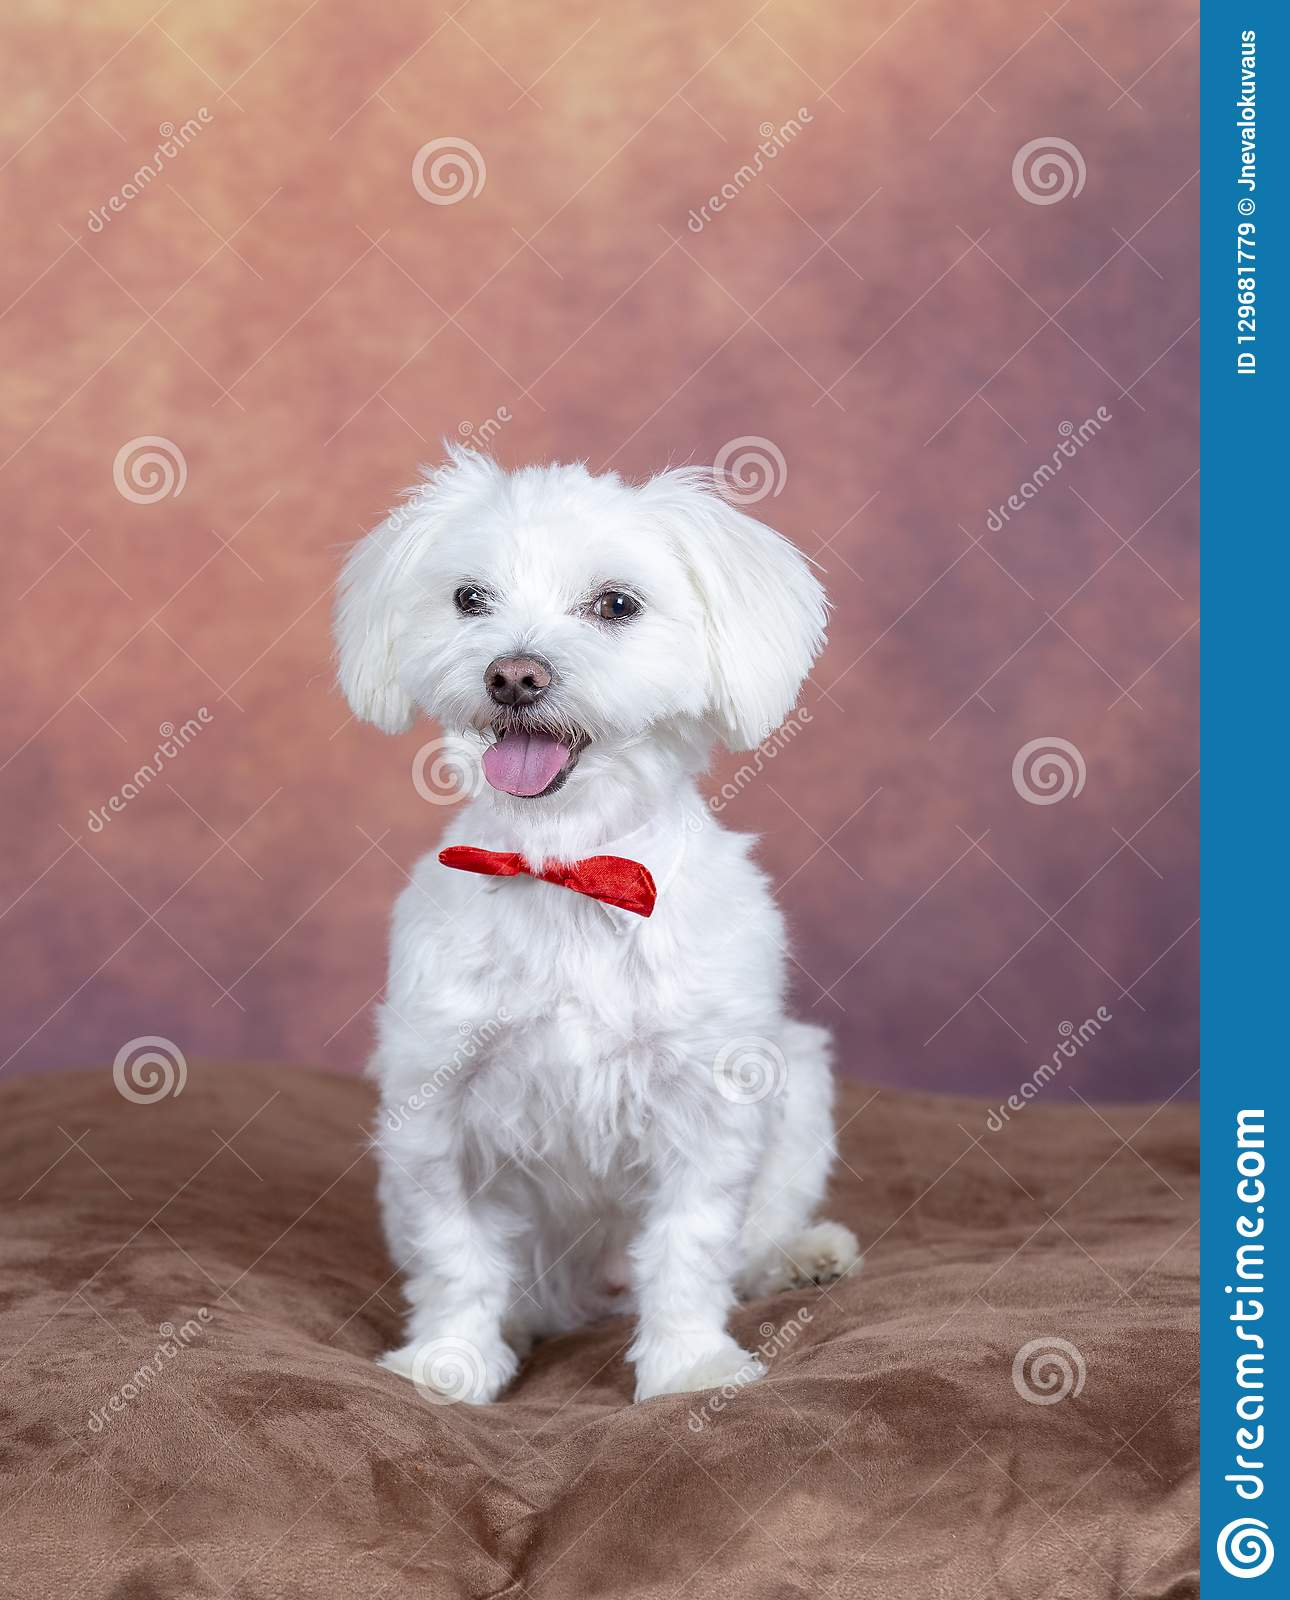 Cute Maltese Dog Wearing A Red Bow Stock Image Image Of Full Indoors 129681779